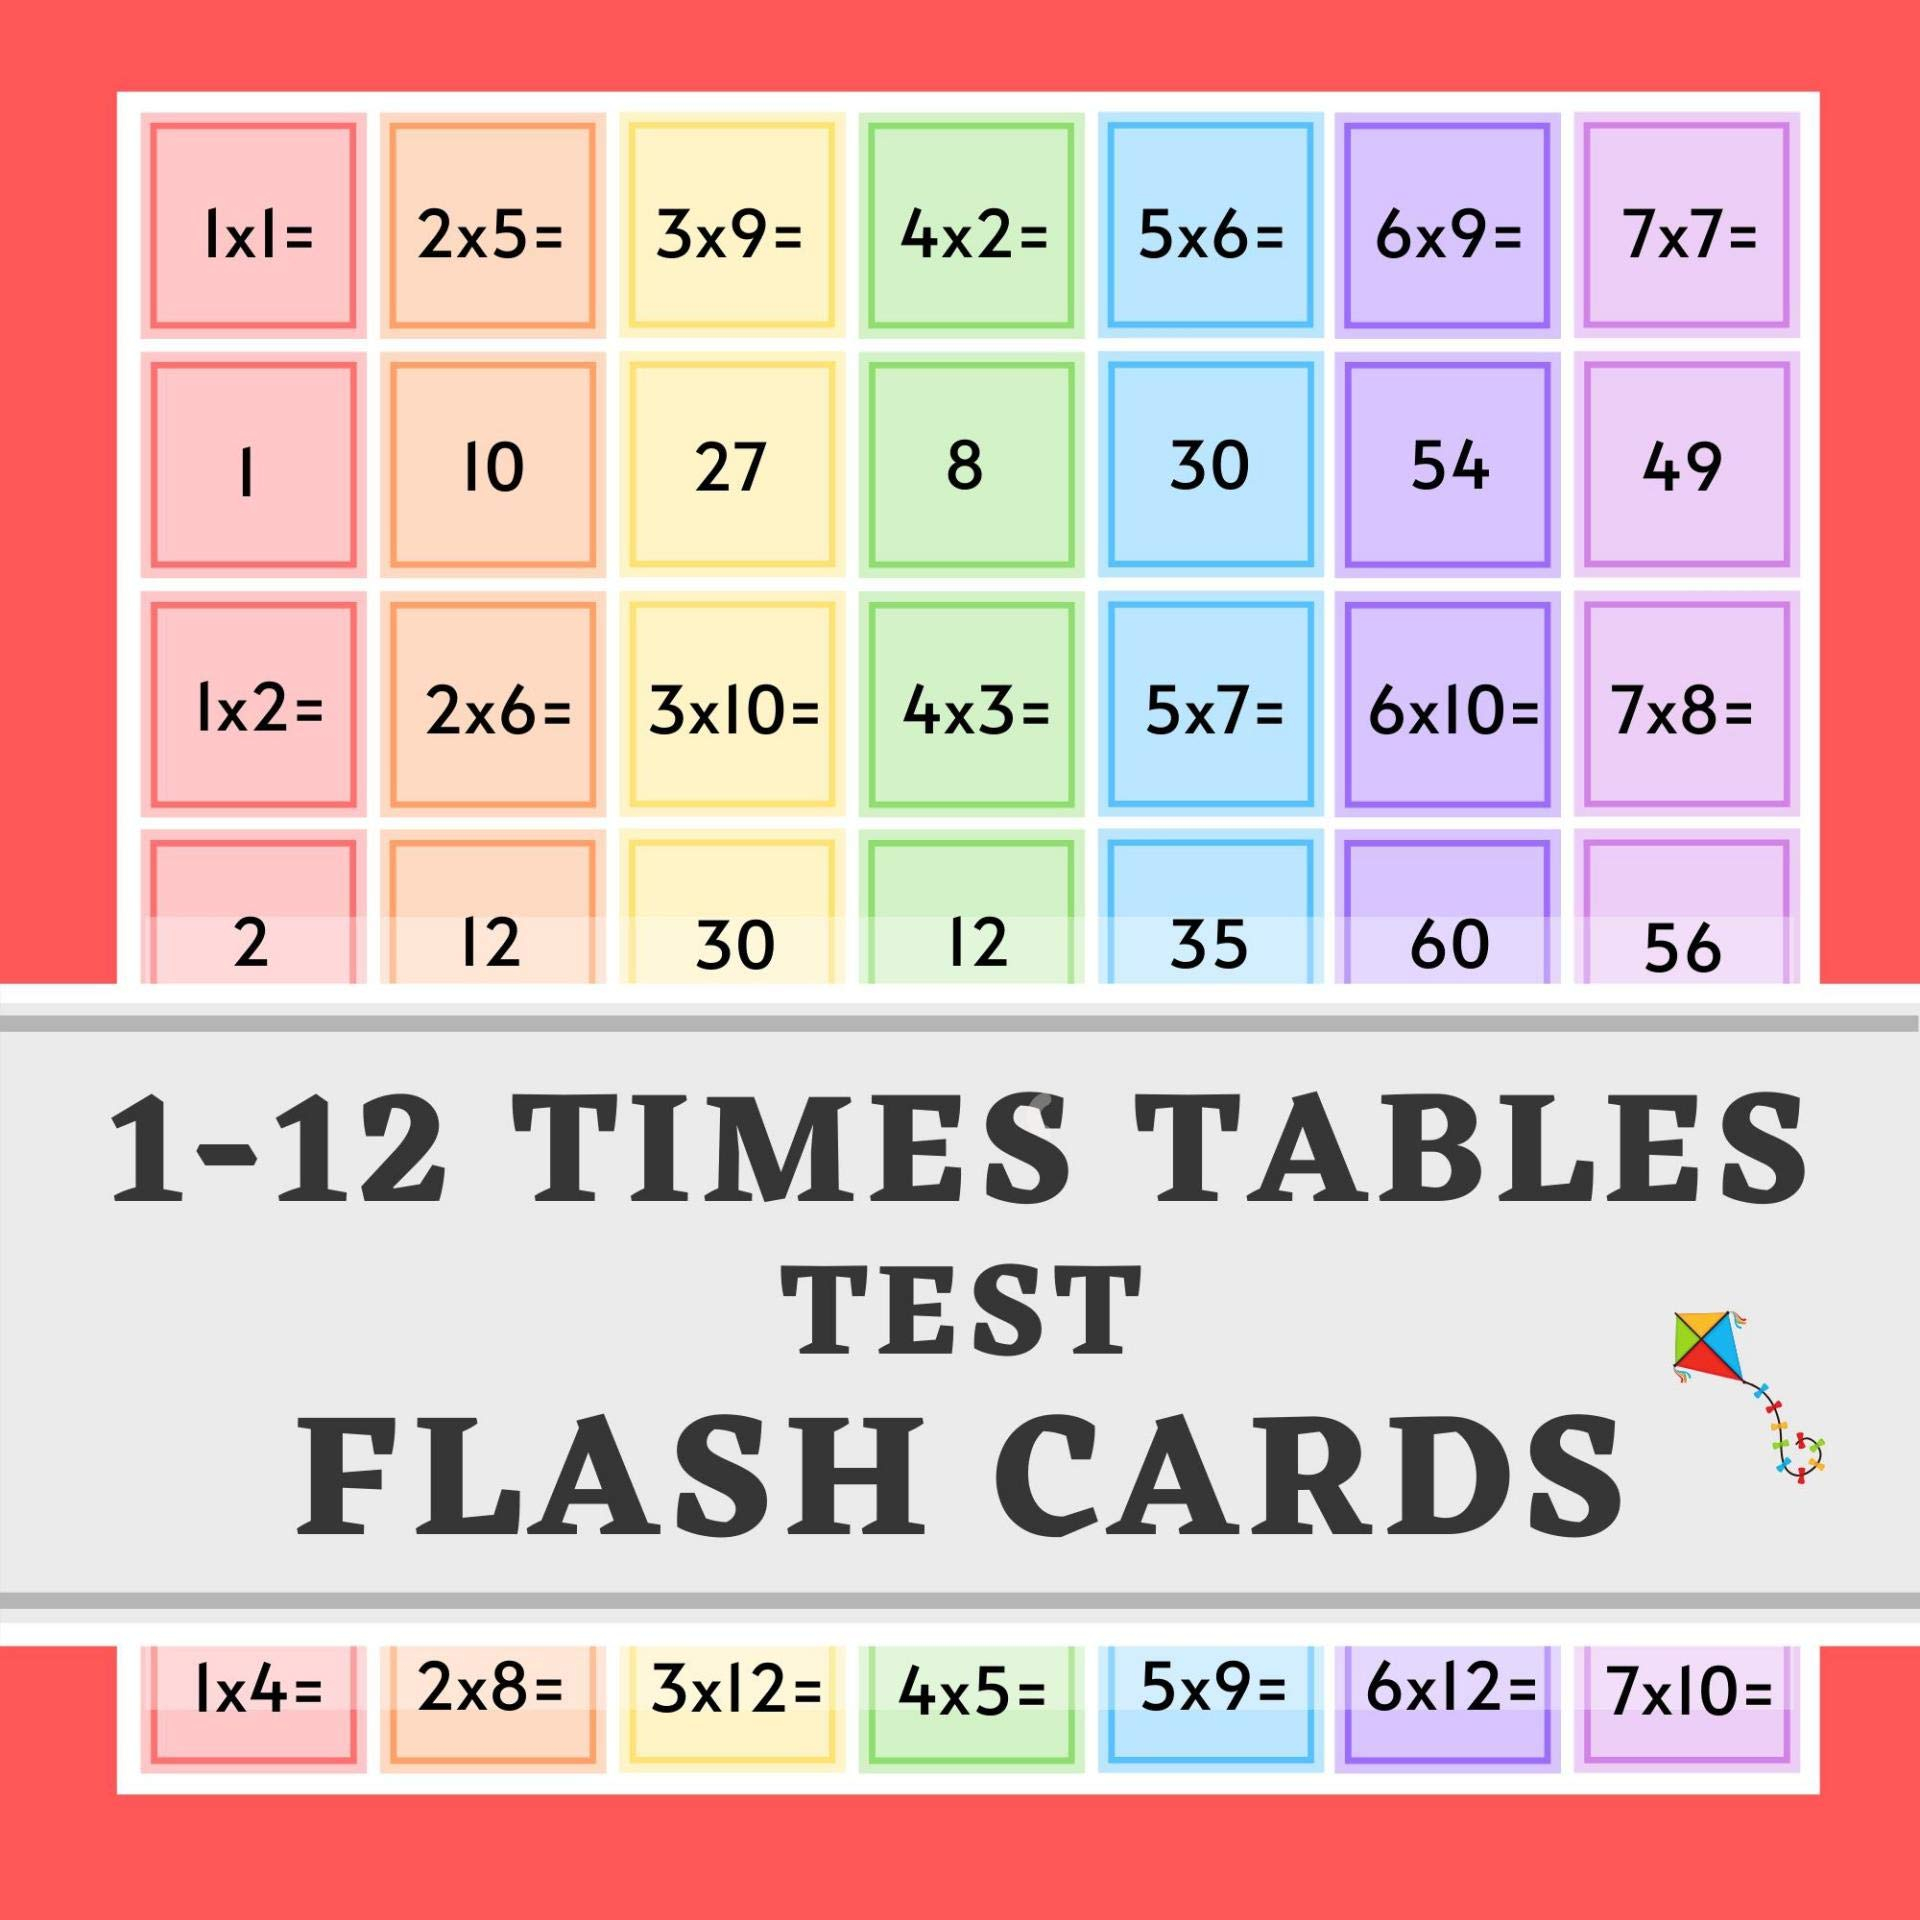 1-12 Times Tables Test Flash Cards: Practice Multiplication 10